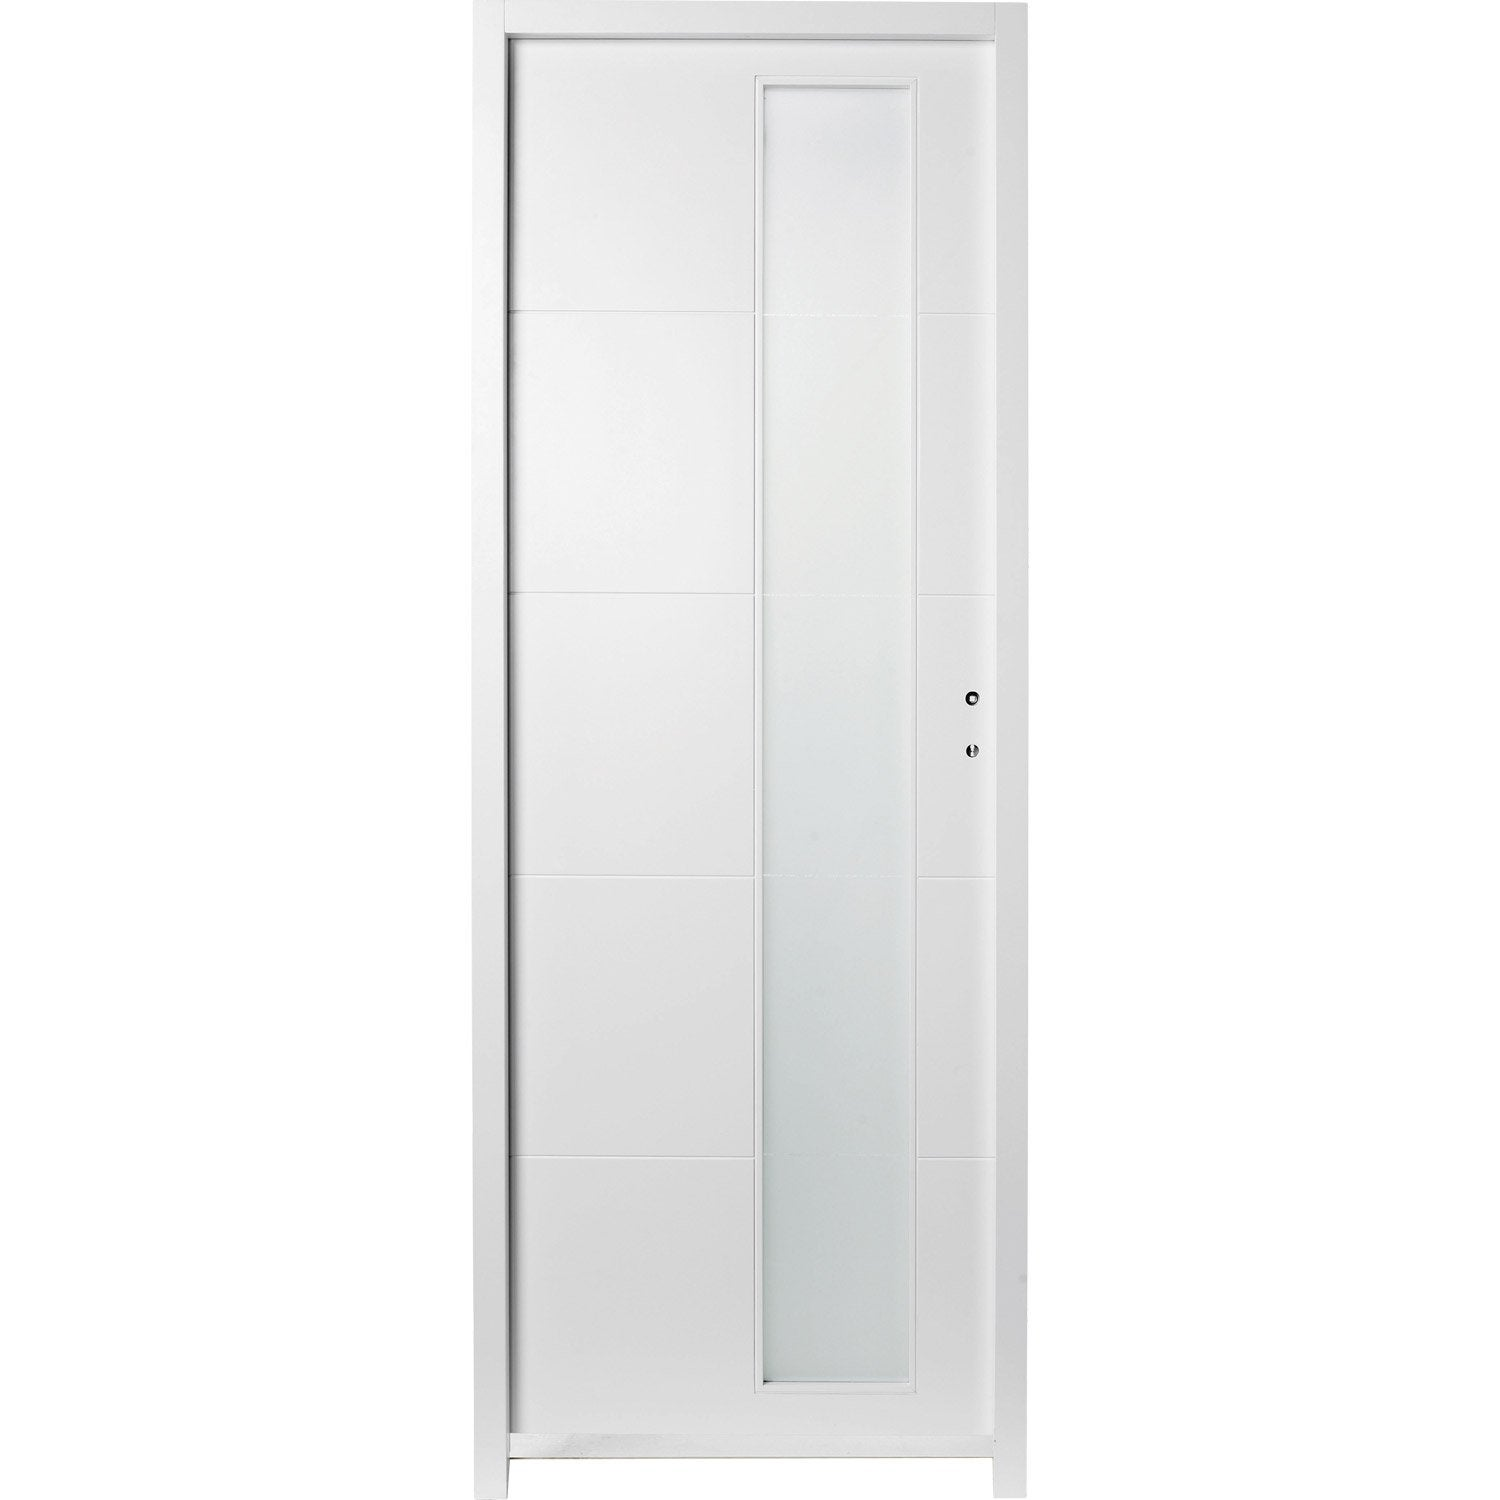 Bloc porte renovation leroy merlin id es de conception sont - Leroy merlin bloc porte ...